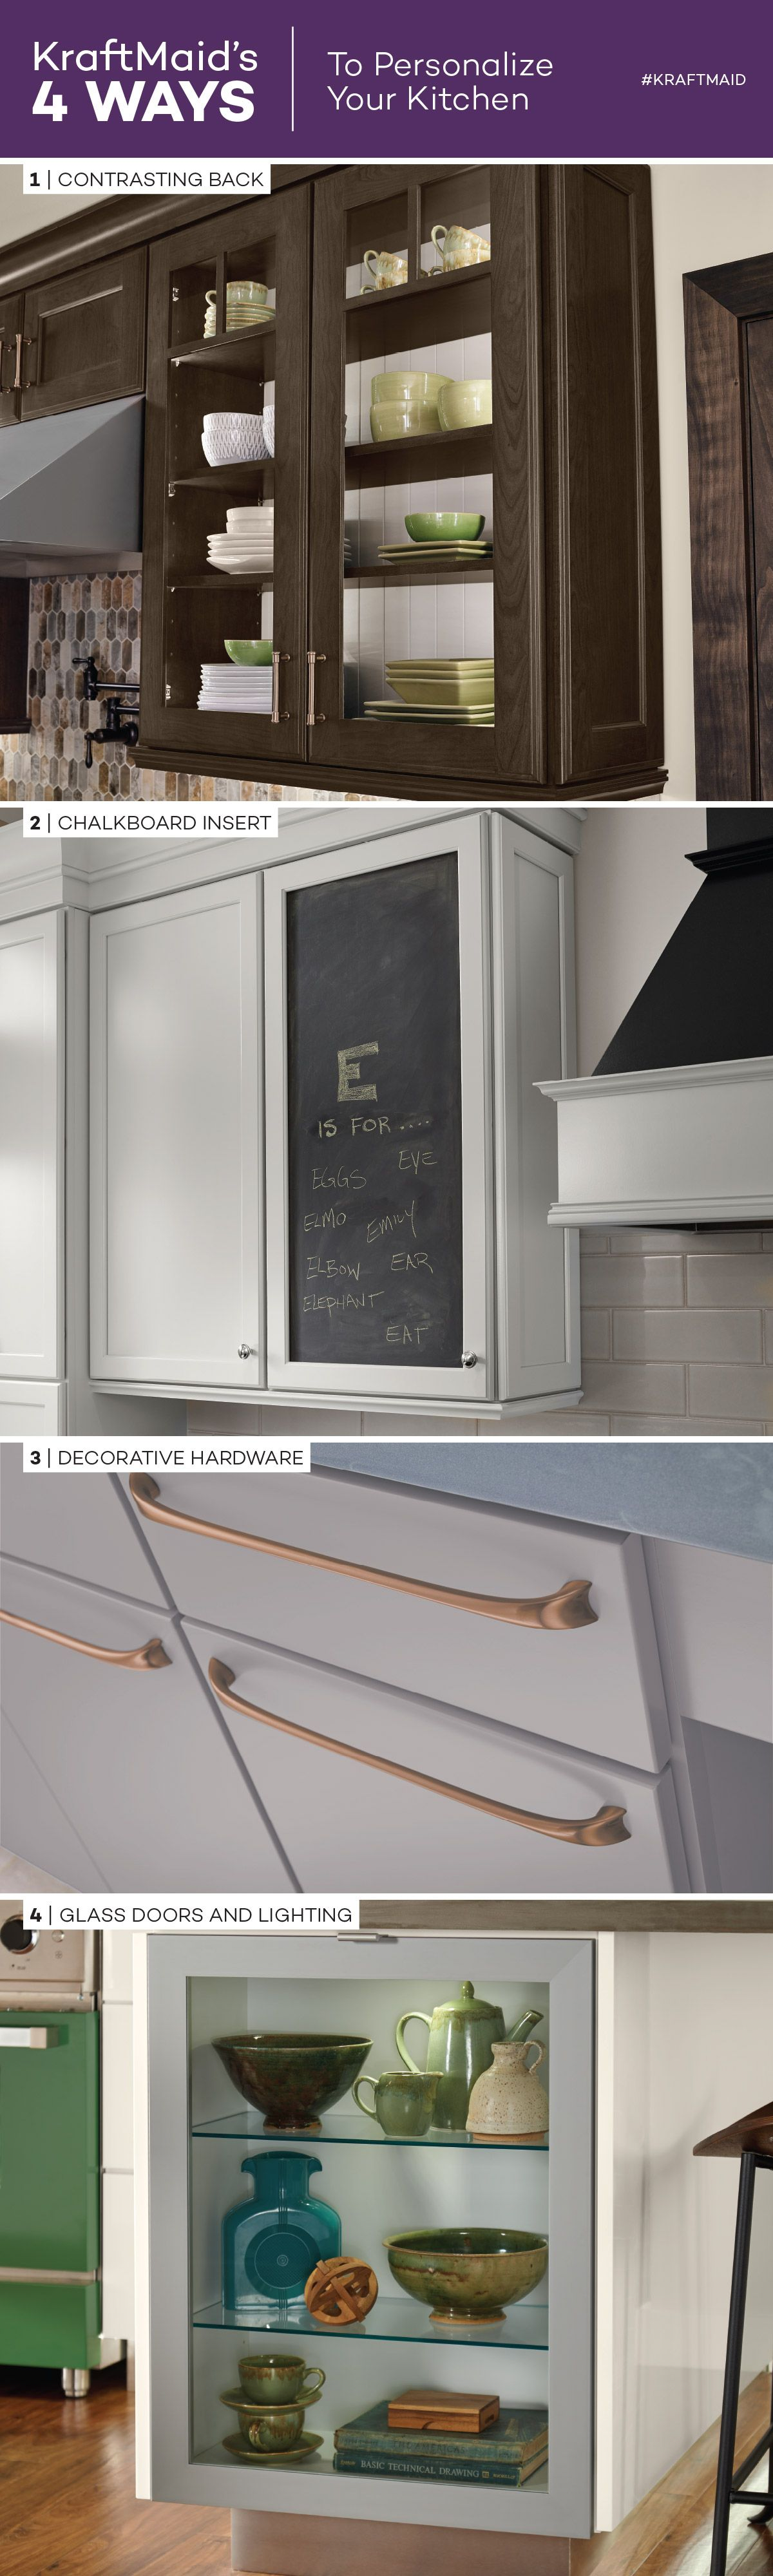 4 WAYS TO PERSONALIZE YOUR KITCHEN CABINETS